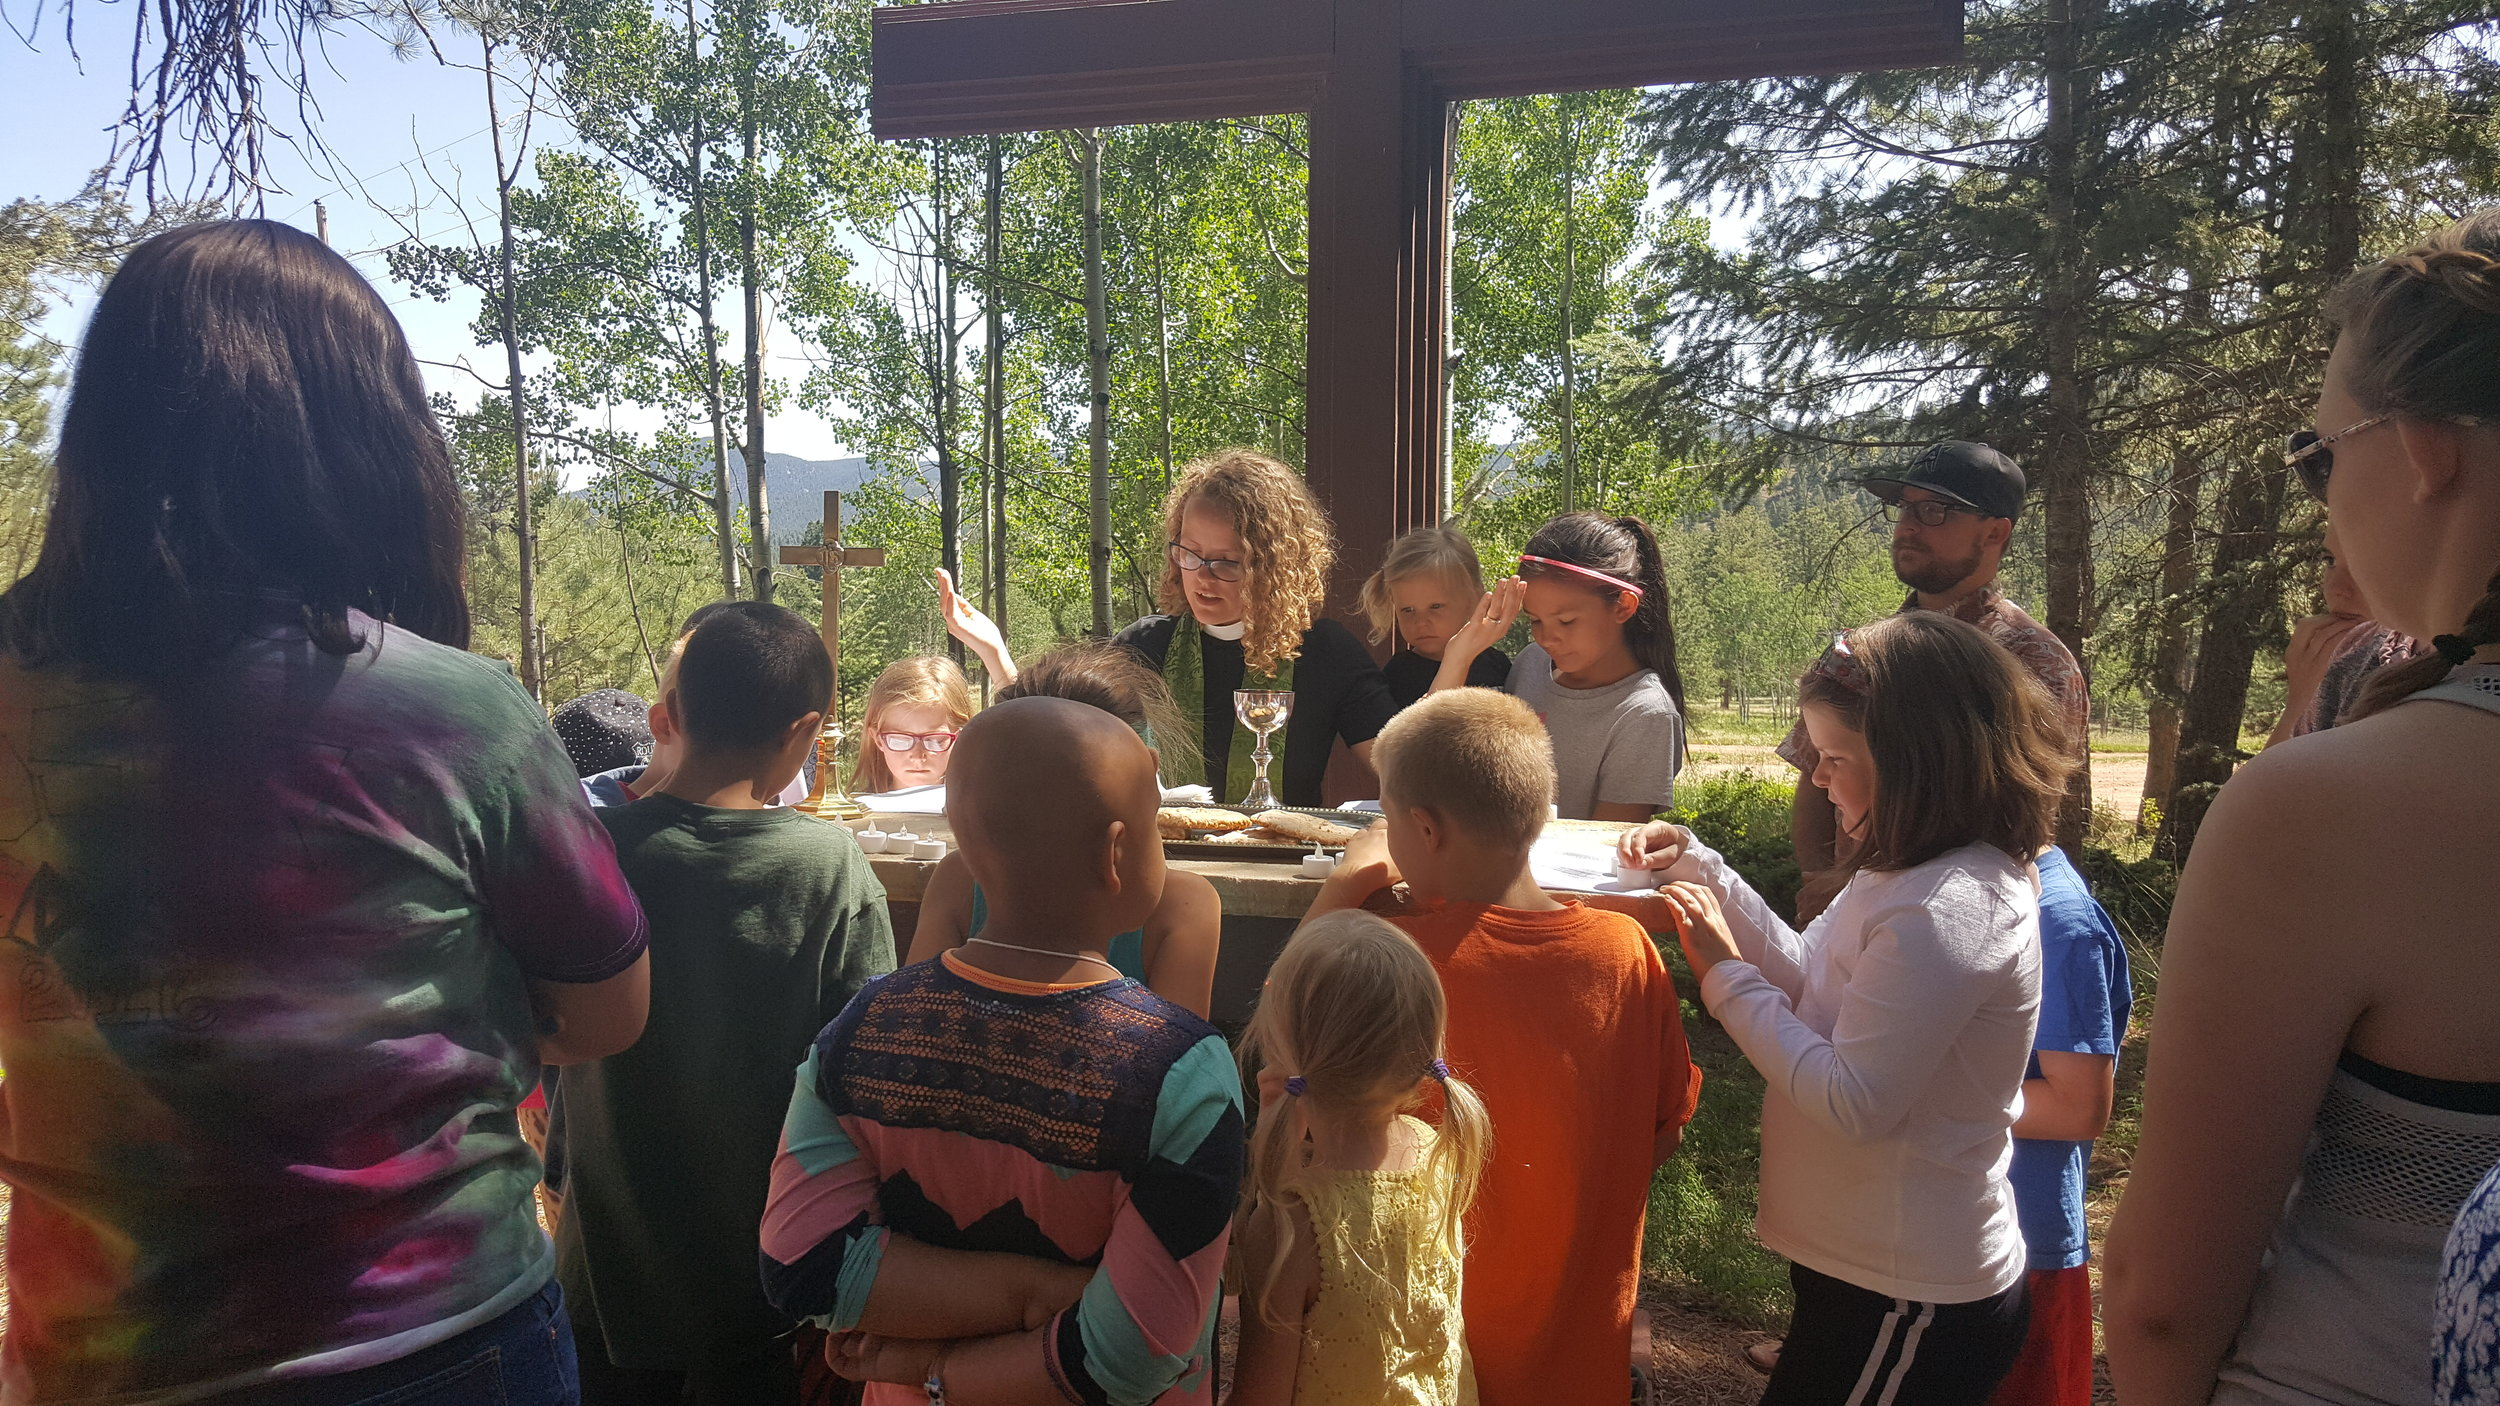 Summer camp at Cathedral Ridge with Krista Dias, Director of Community Life, Chapel of Our Saviour, Colorado Springs